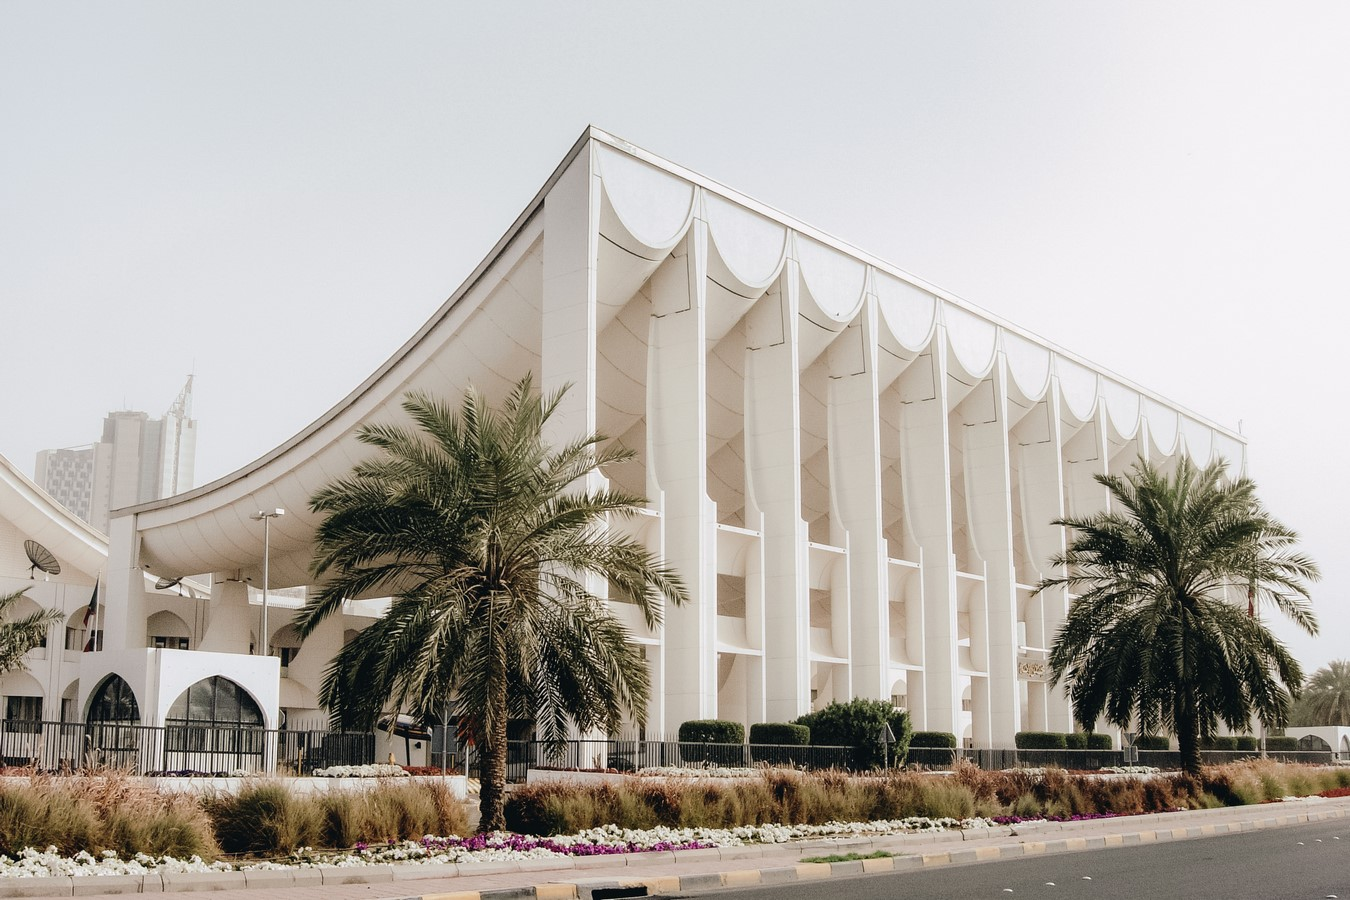 Kuwait National Assembly Building by Jørn Utzon: Architecture inspired from Bazaars - Sheet2